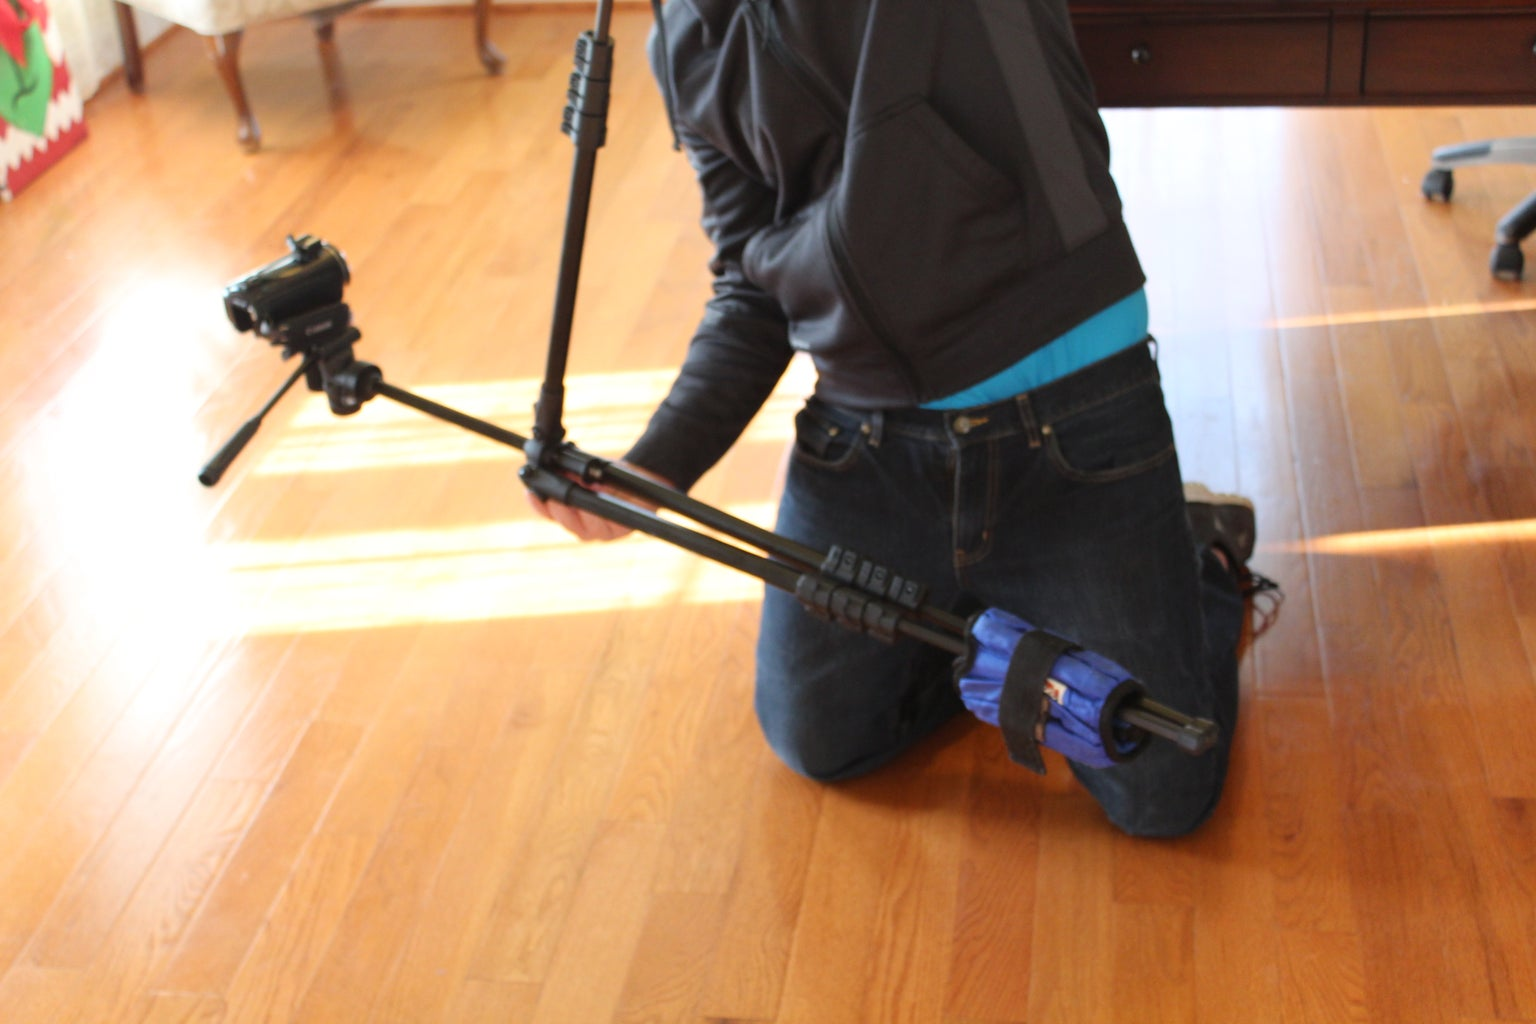 Lift Tripod With Single Leg.  Adjust Weights/extensions Until the Unit Is Balanced.